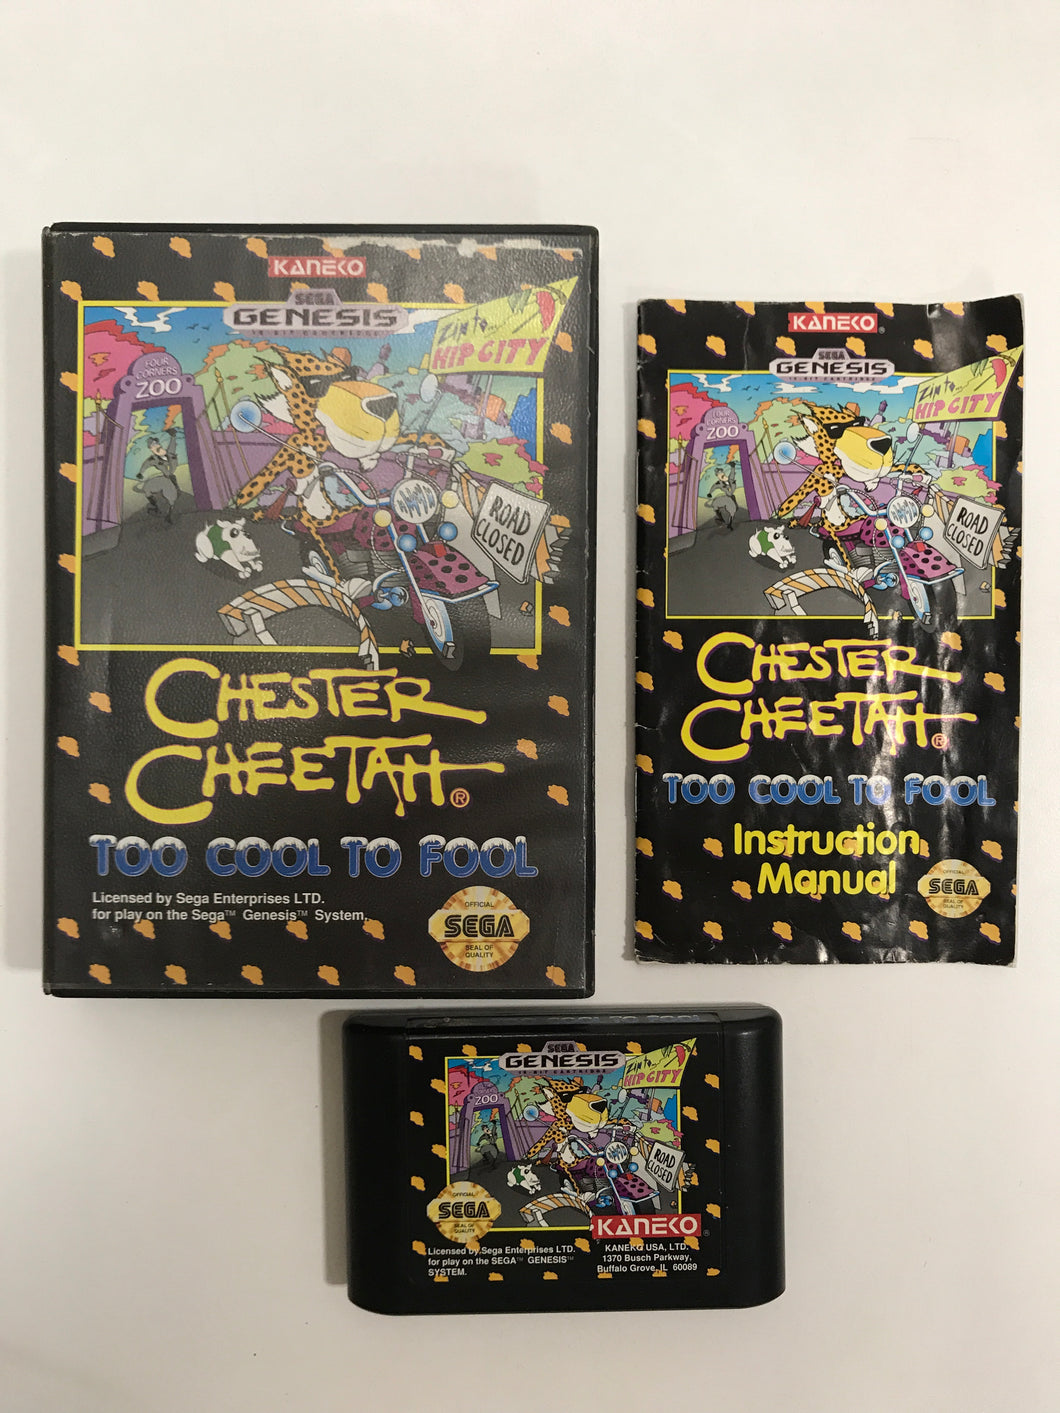 Chester cheetah too cool to fool sega megadrive avec notice